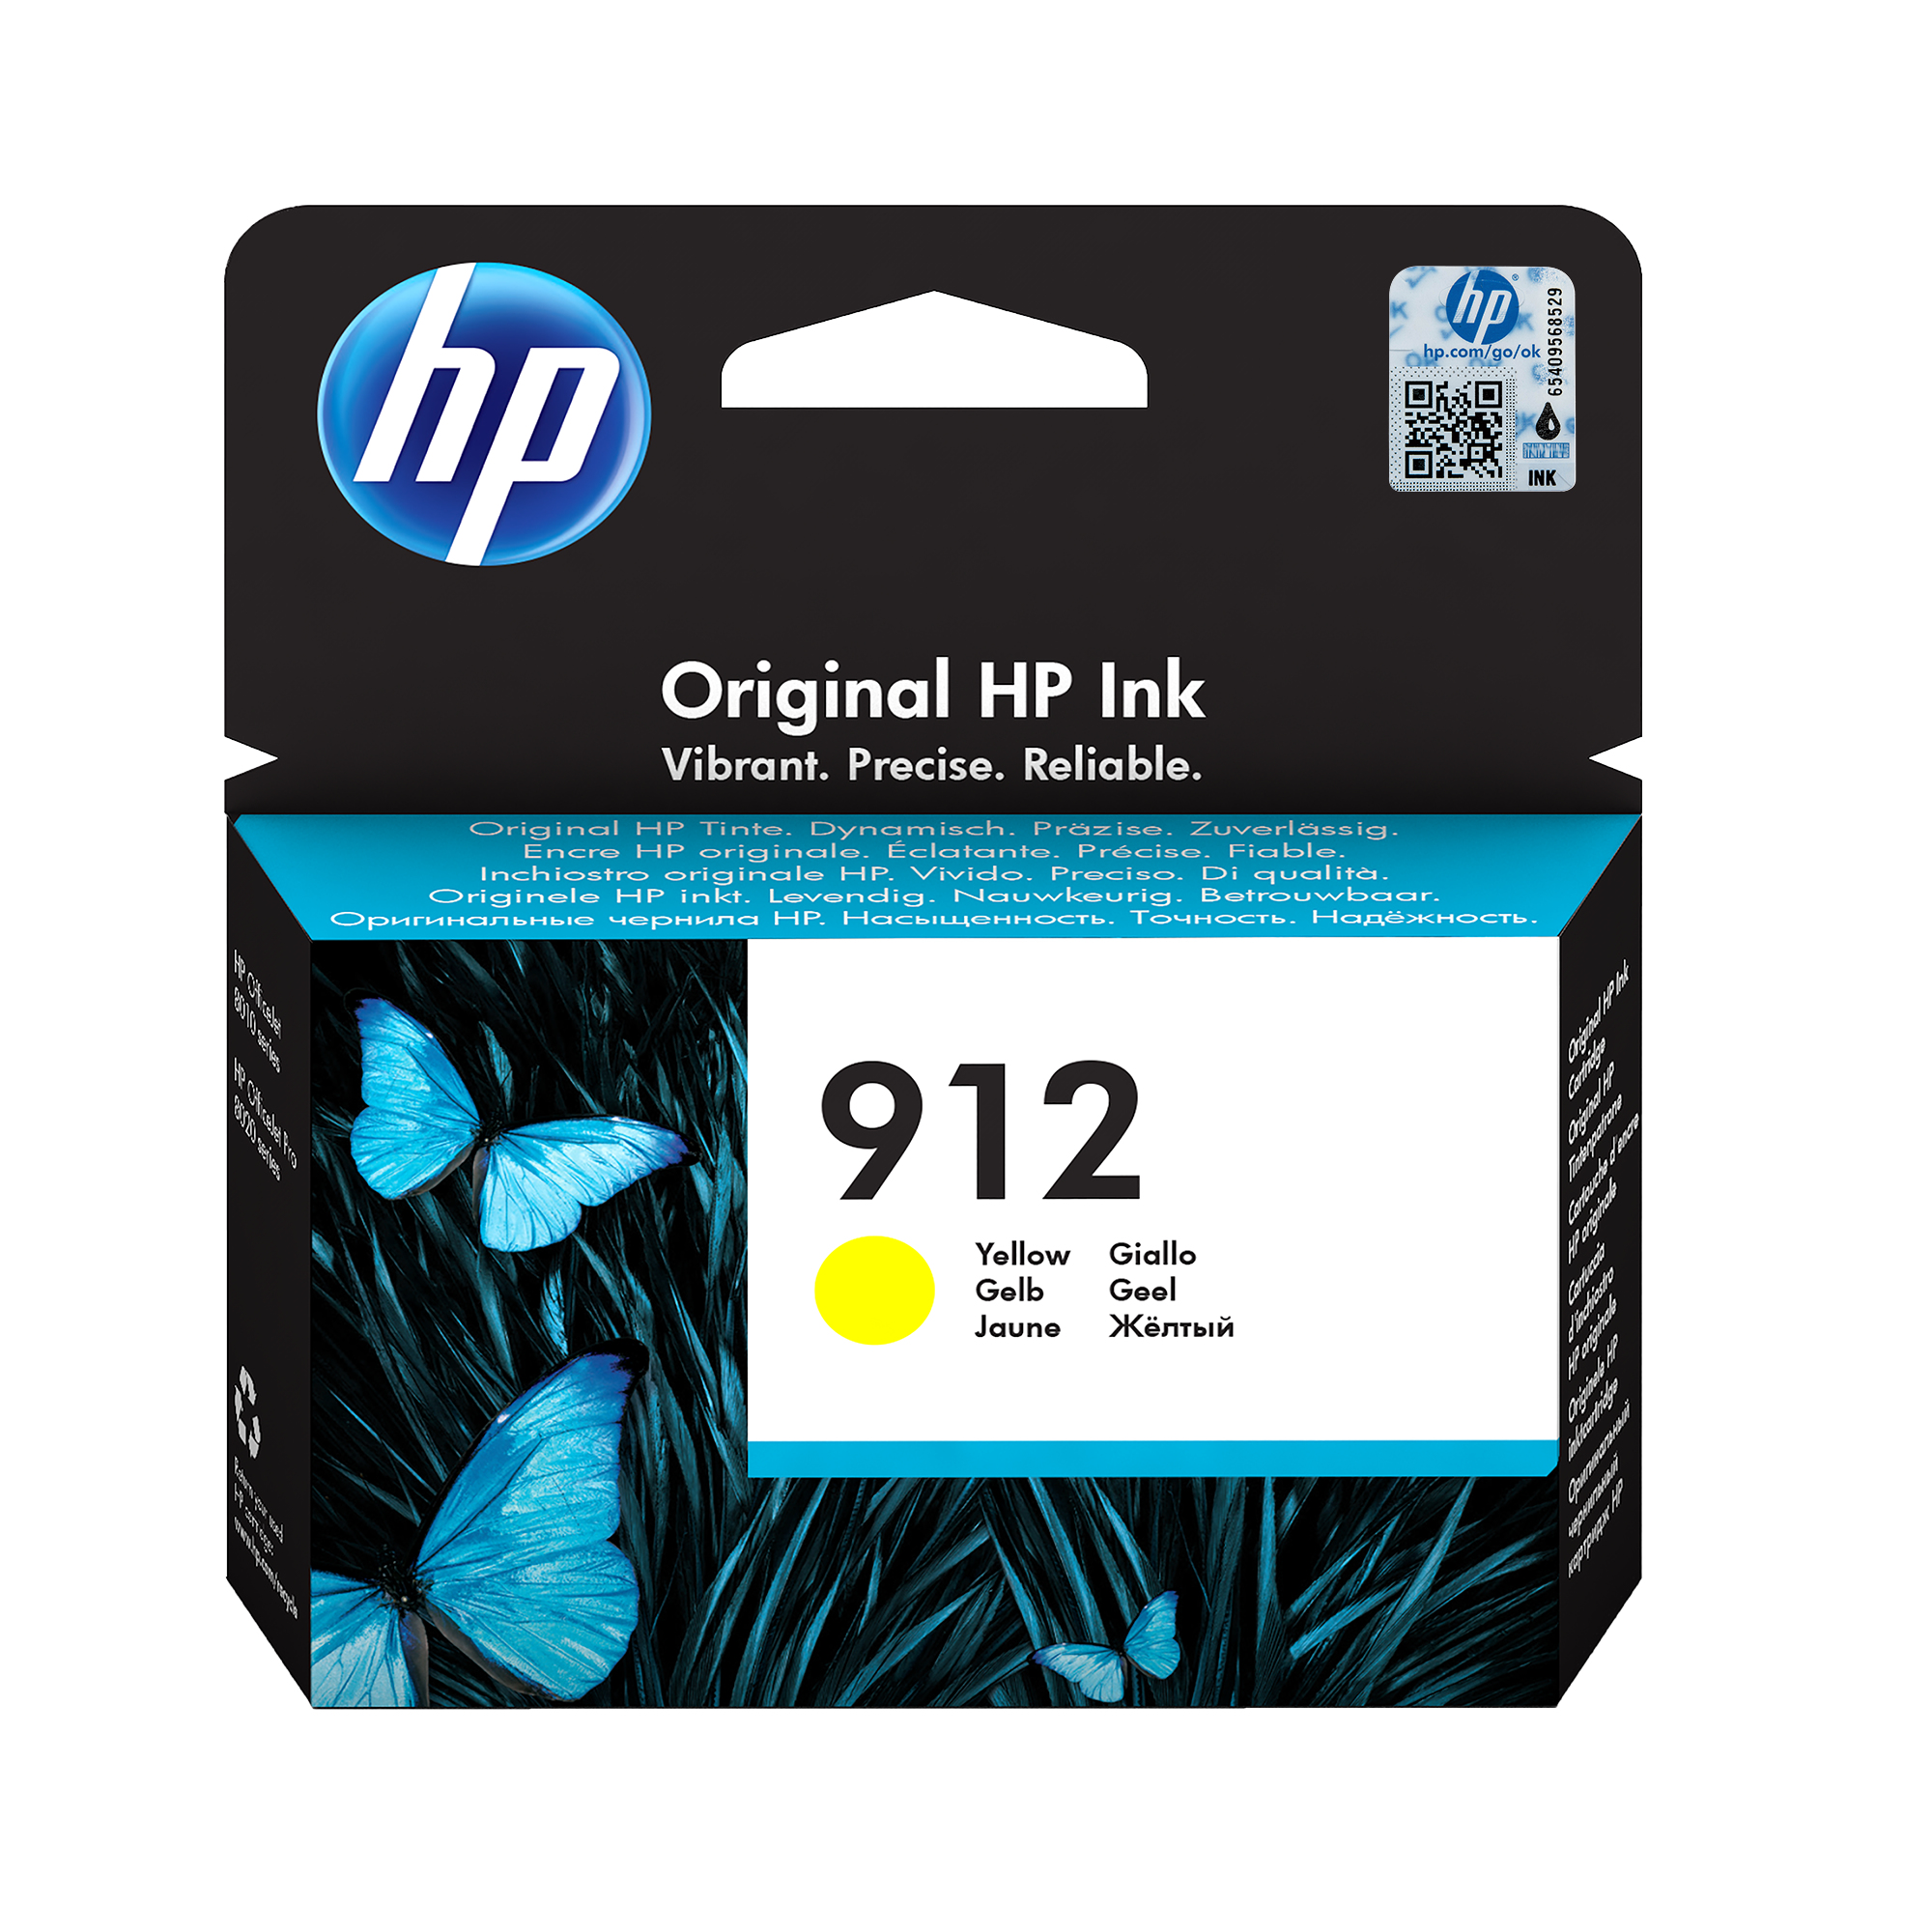 HP 912 yellow ink cartridge original